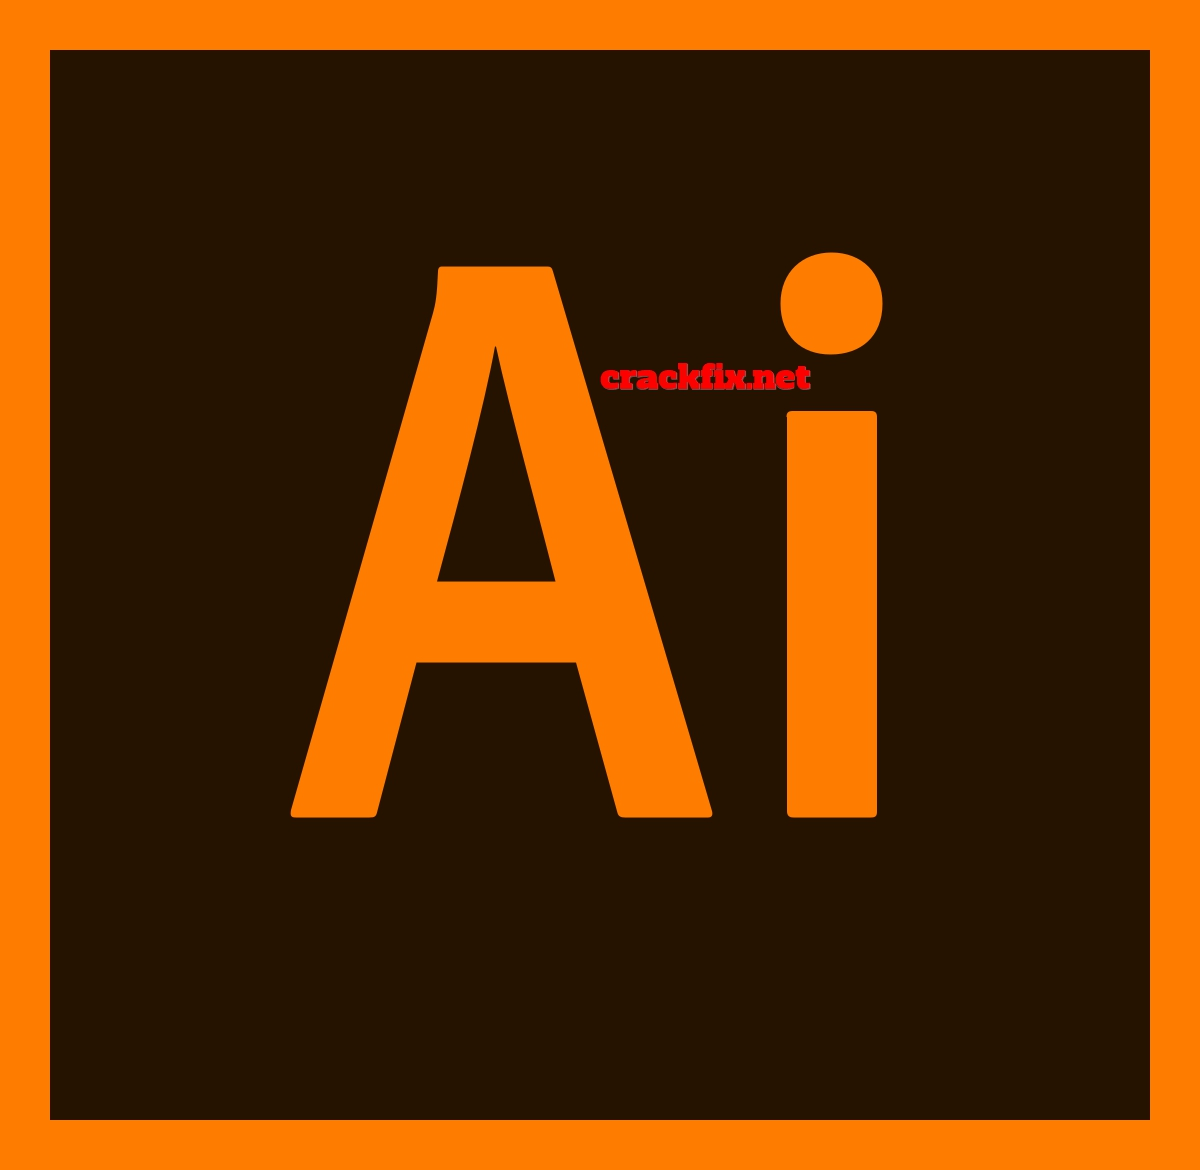 Adobe Illustrator CC 2020 Build 24.3.0.569 Crack + Activation Key [PRO]